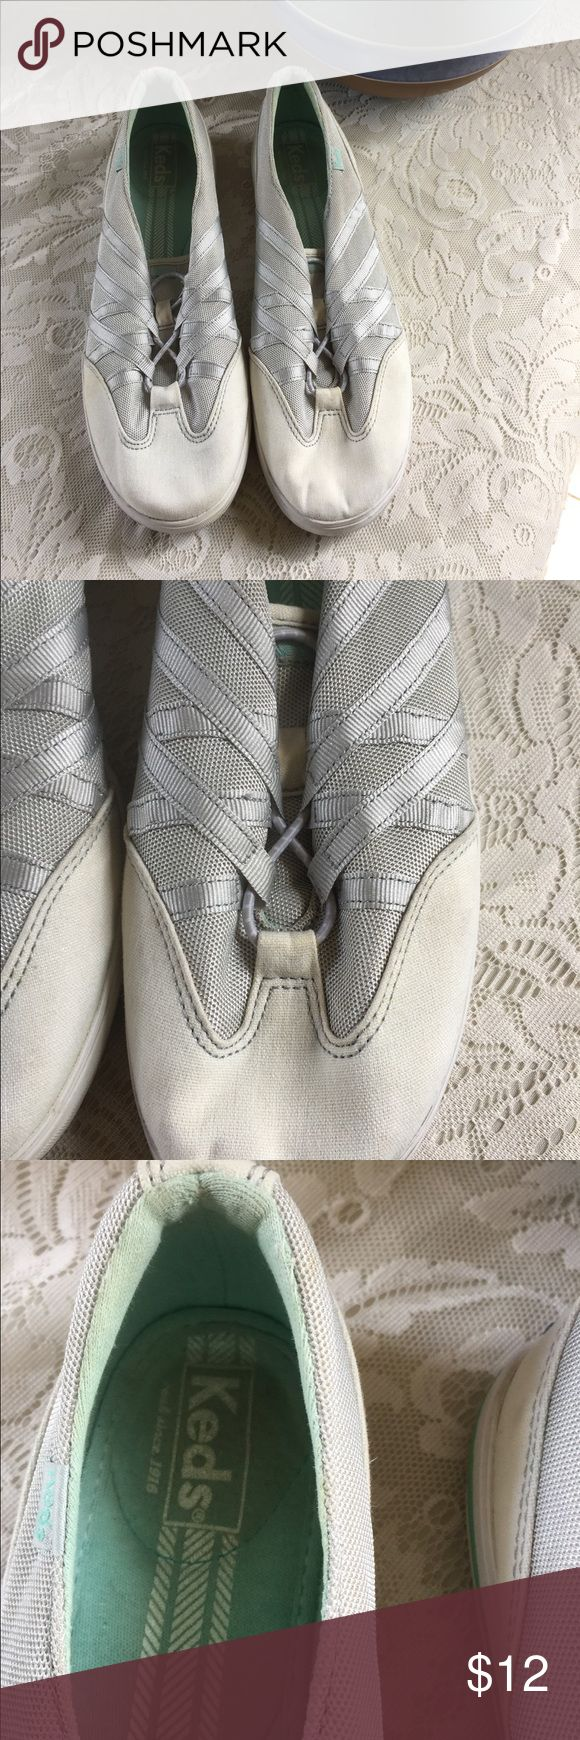 Keds slip on tennis shoe with no toe laces SZ 10 Keds slip on tennis shoe with no toe laces SZ 10.  White top with gray background and sliver stripes.  These are slip Keds.  Gently Used and in good condition. Keds Shoes Sneakers